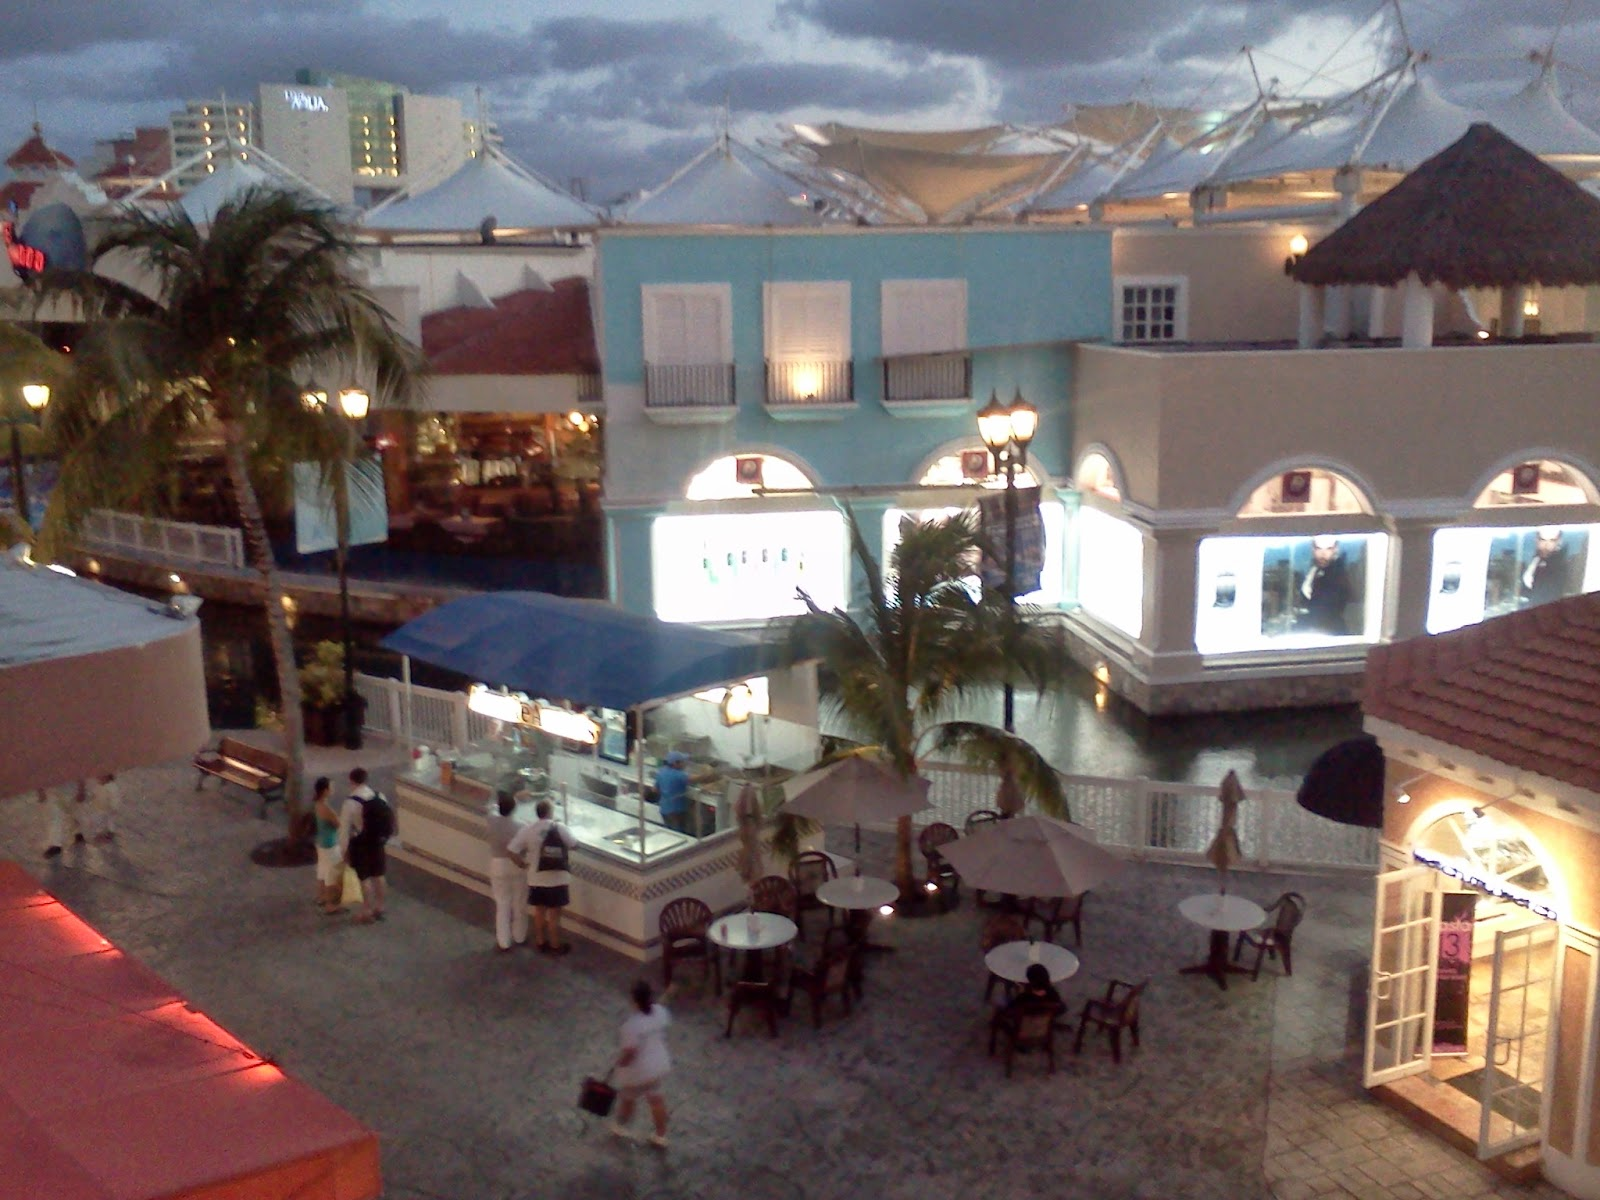 La Isla Mall at Dusk